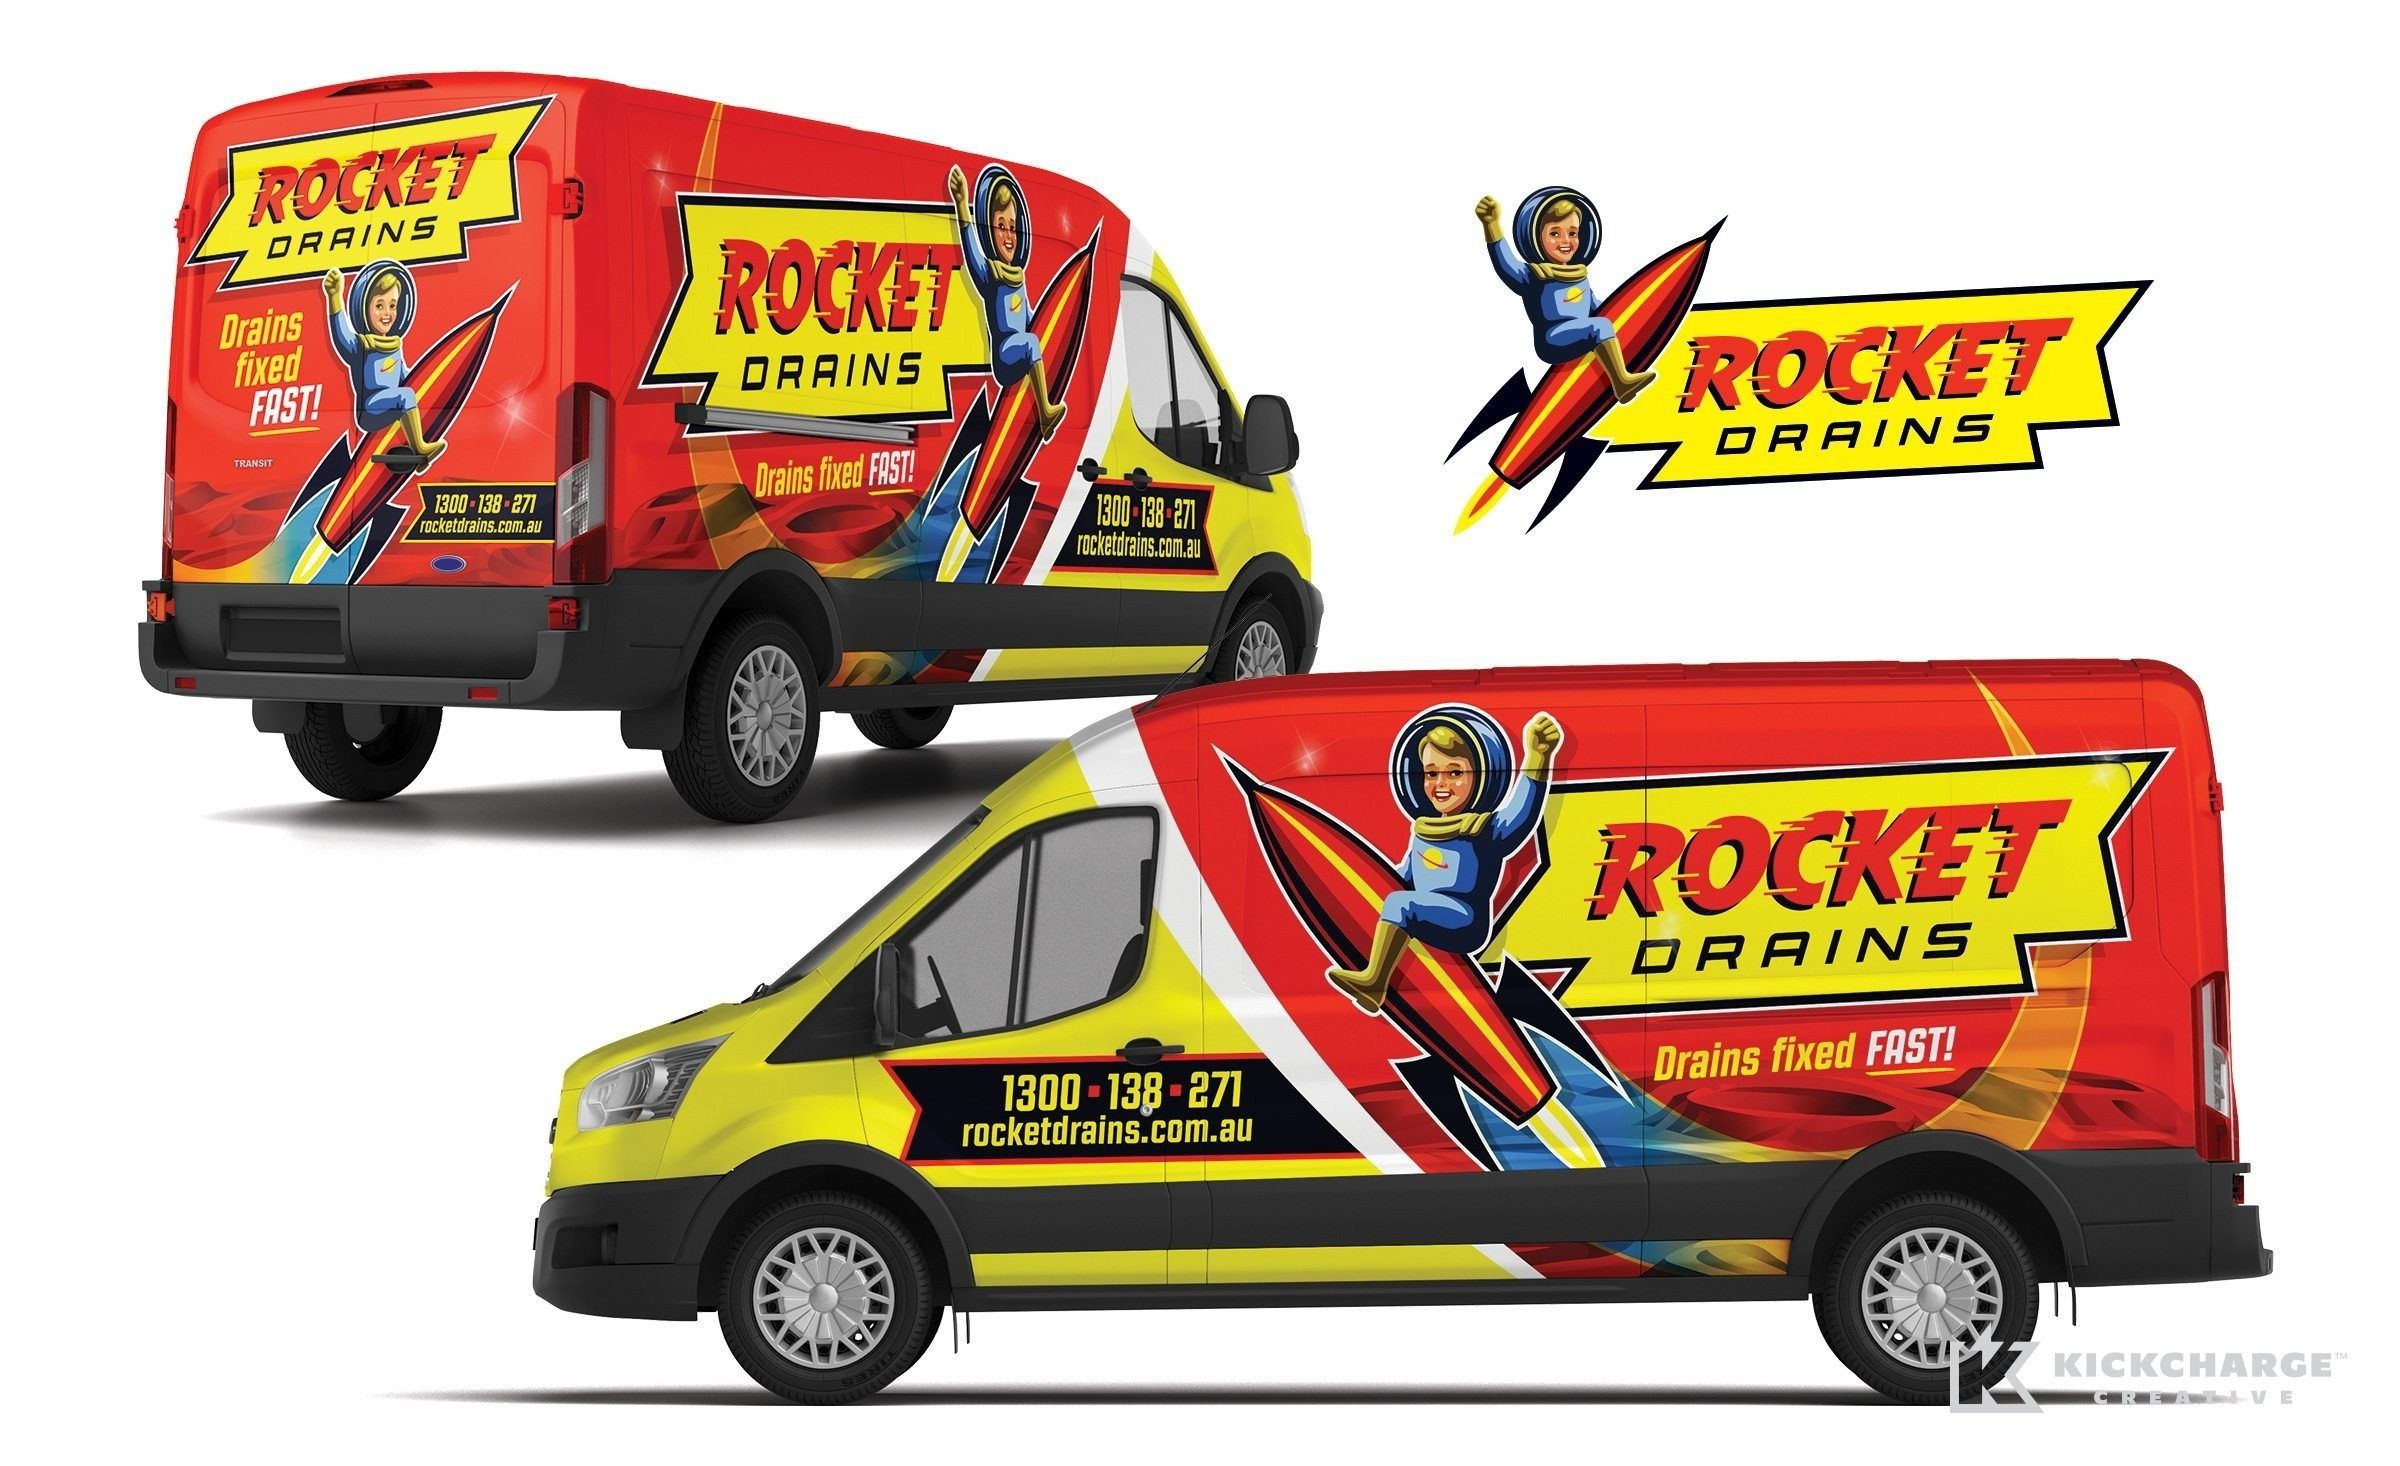 Rocket Drains Kickcharge Creative Cool Trucks Car Wrap Design